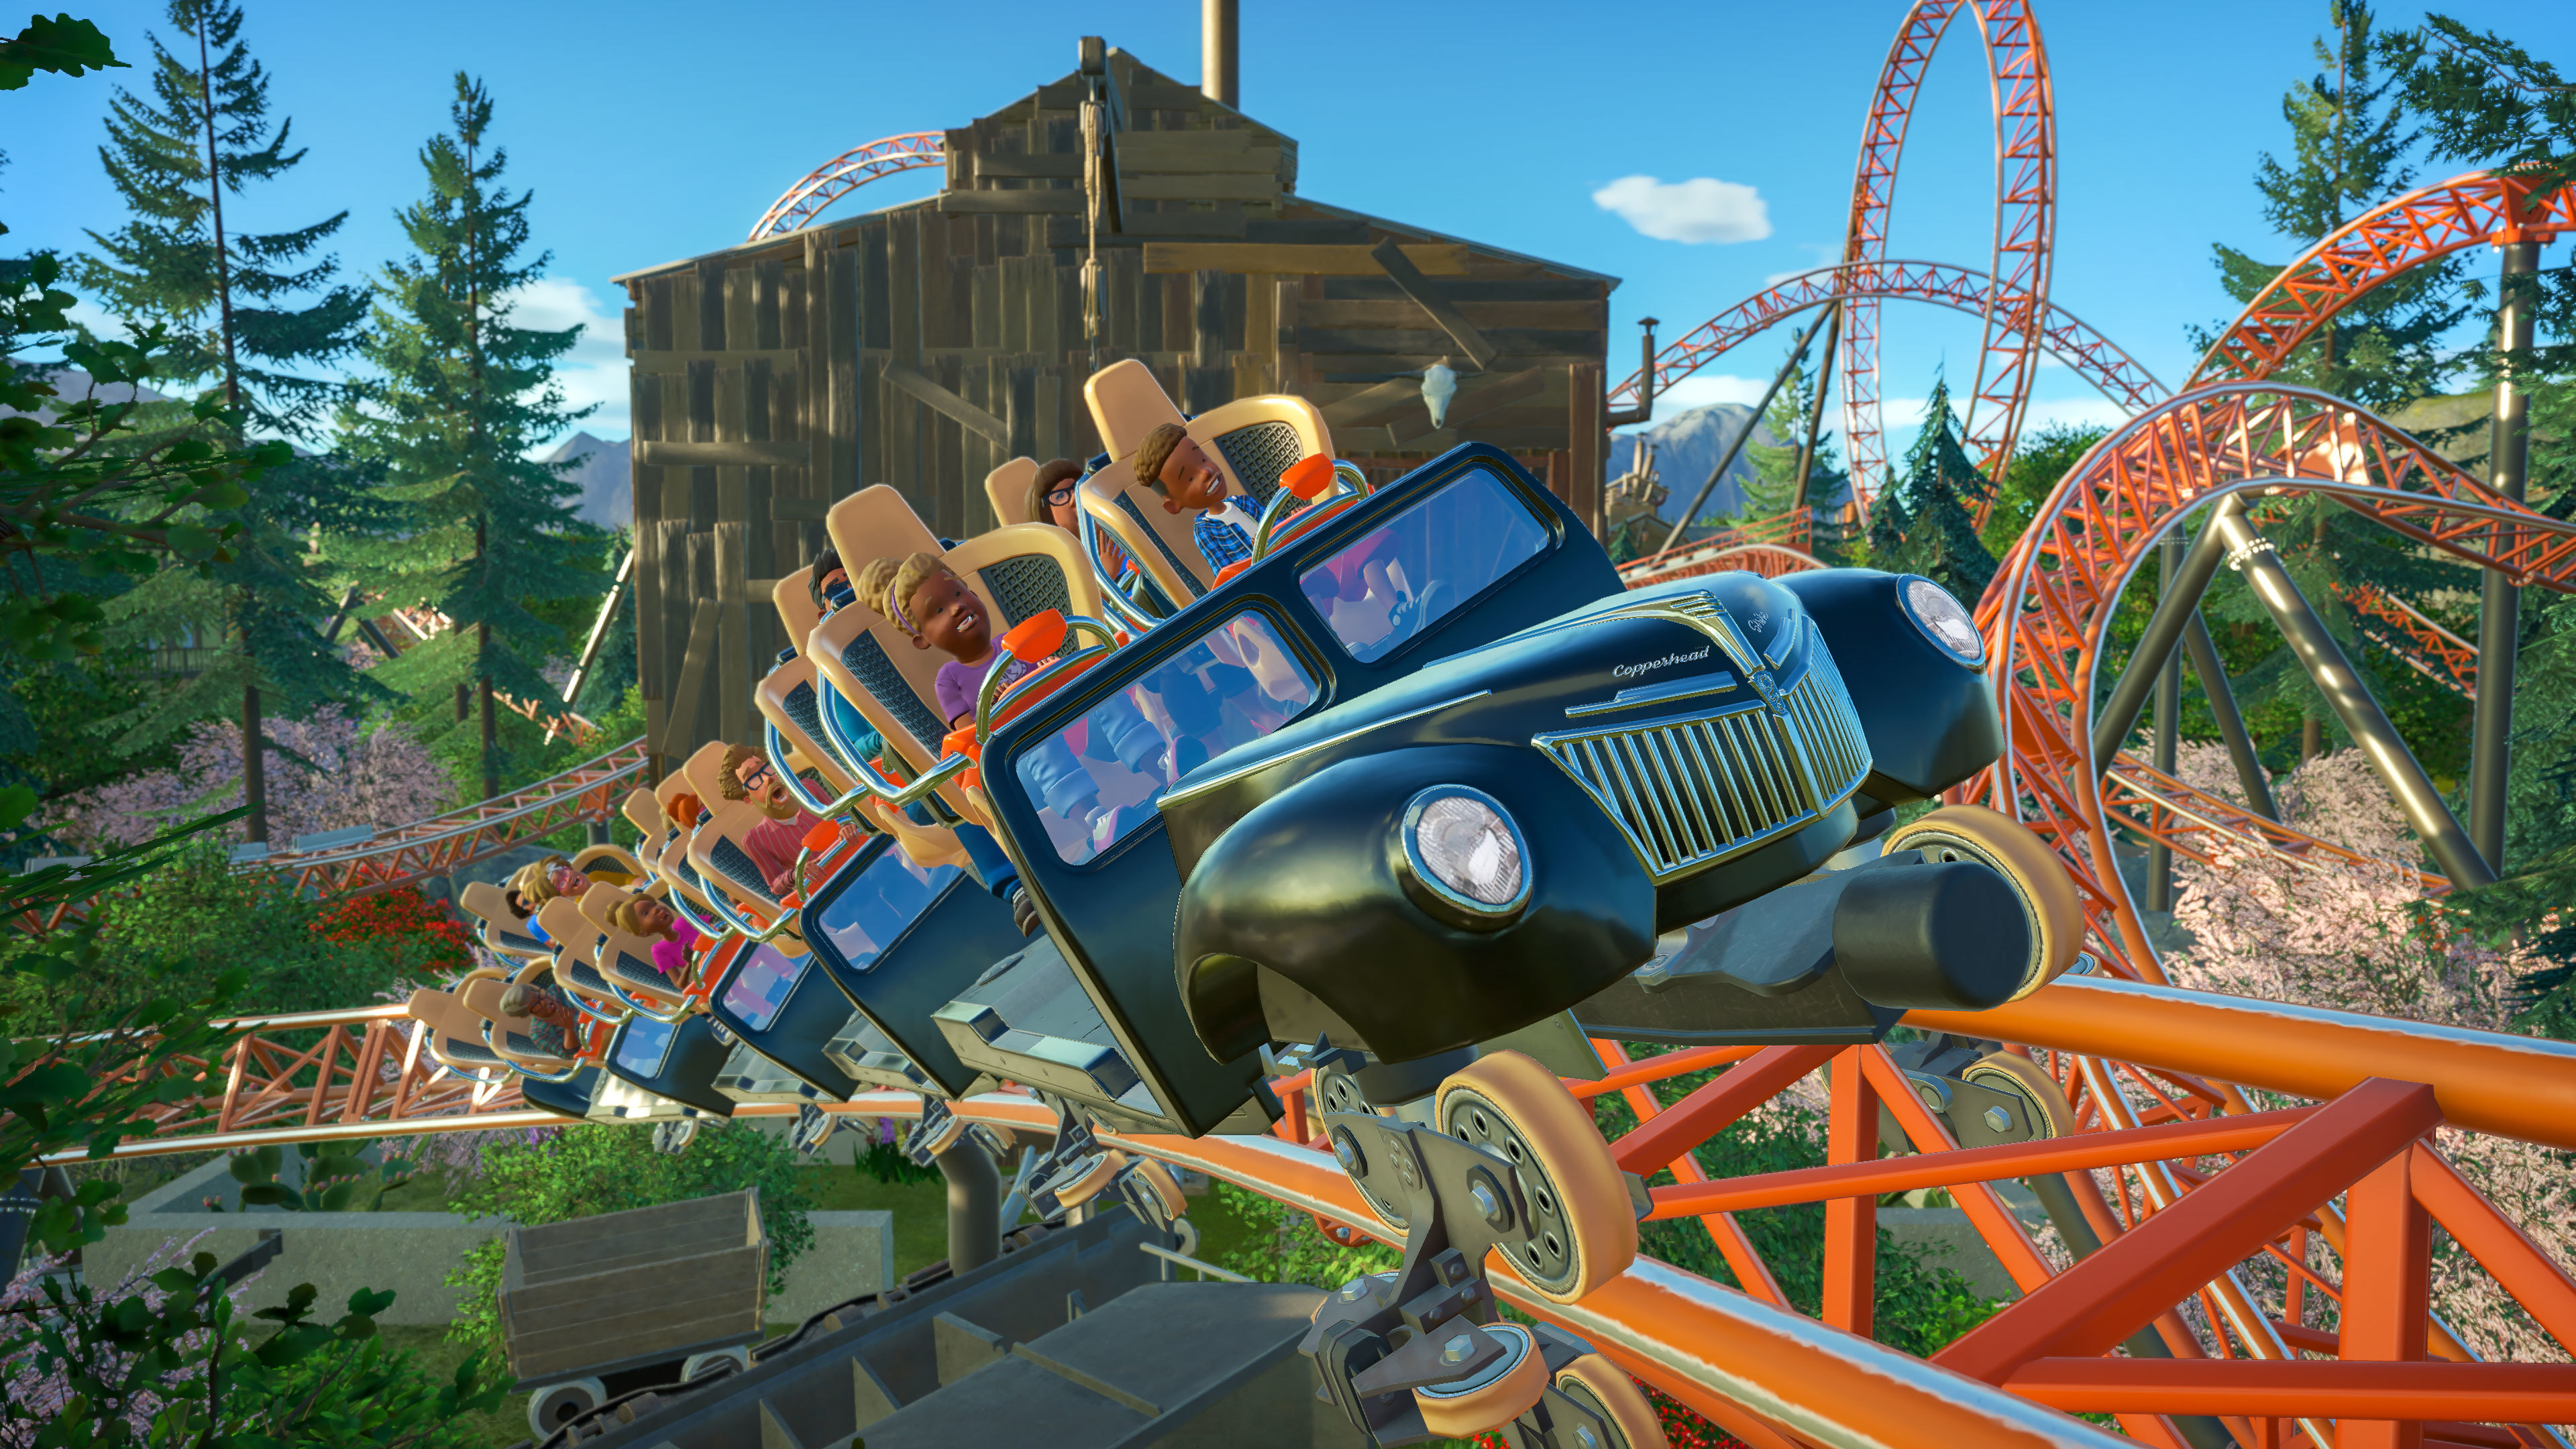 Planet Coaster :: Carowinds Copperhead Strike and Classic Rides